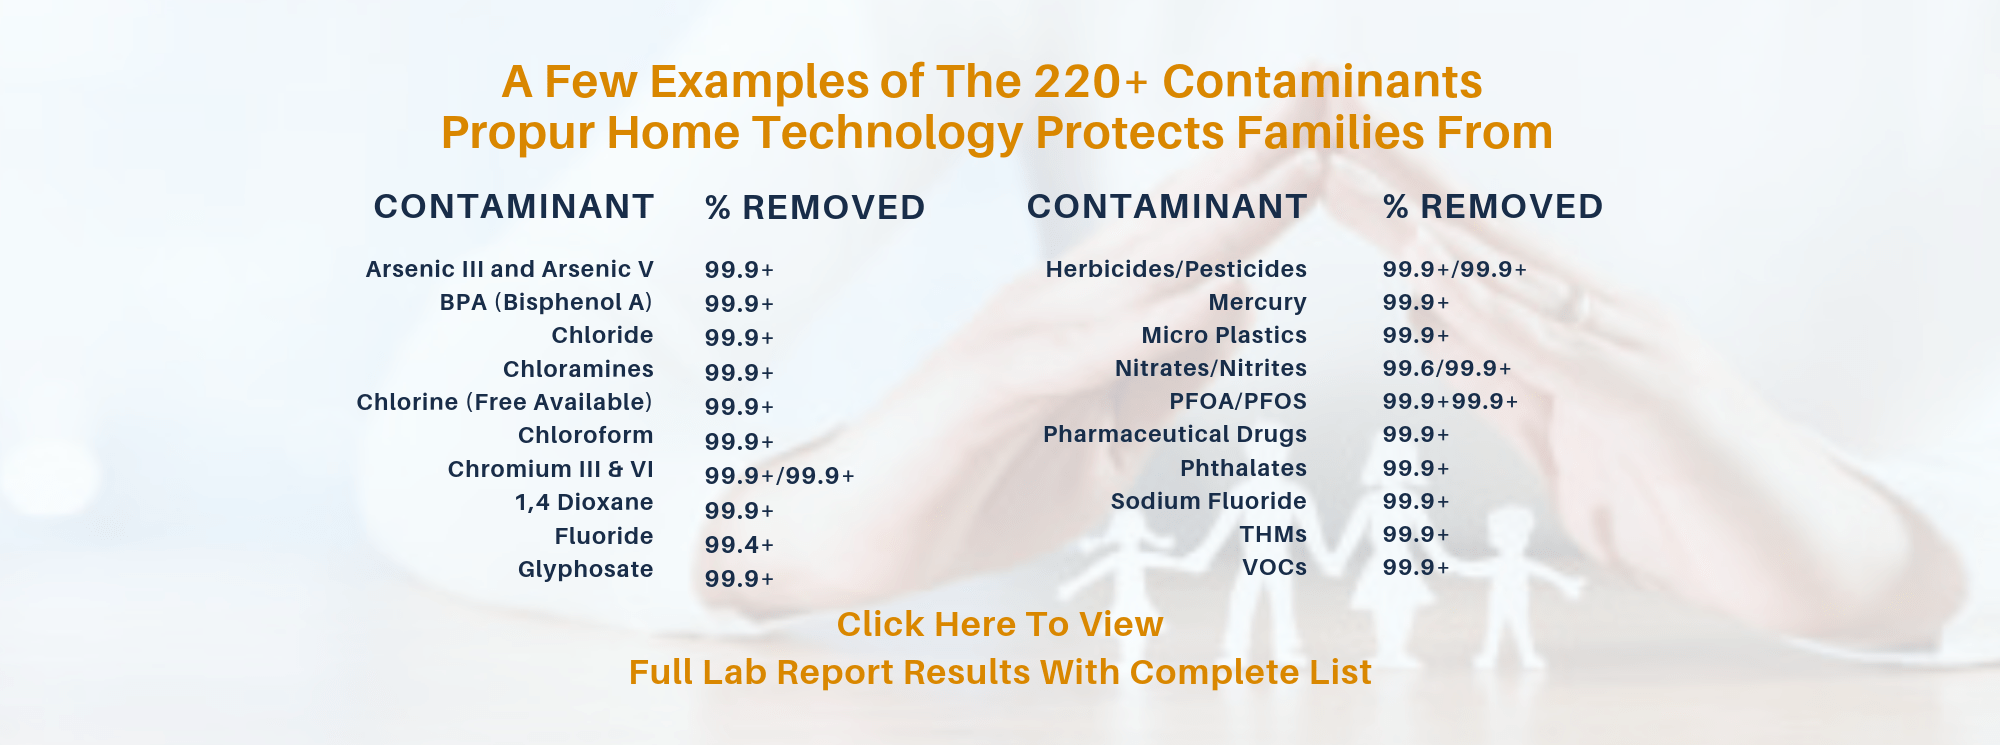 whole house water filter removes Chlorine Chloramine Chloroform Fluoride Nitrates Nitrites Glyphosate Heavy Metals Mercury Chromium Micro Plastics BPA Haloacetic Acid PFOA PFOS Herbicides Pesticides Pharmaceuticals Phthalates THMs 1-4 Dioxane, NSF Standard 53  NSF Standard 42  NSF Standard 401  NSF Standard P-473  NSF Standard P-231